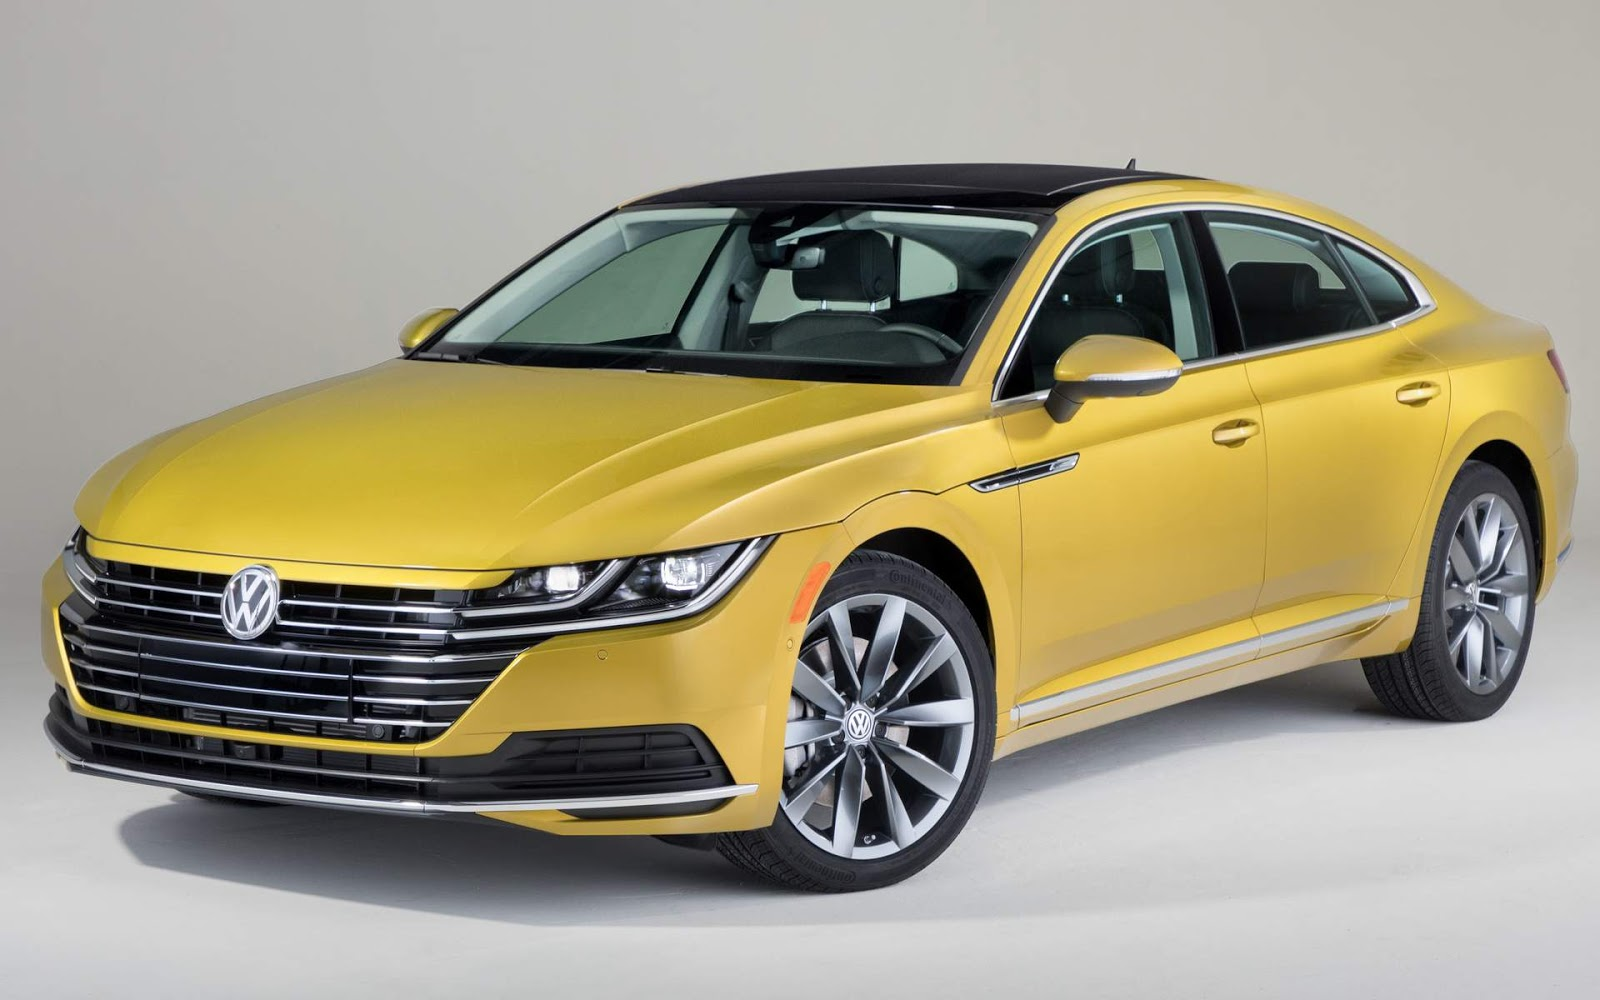 volkswagen arteon sucede o cc nos eua fotos e detalhes car blog br. Black Bedroom Furniture Sets. Home Design Ideas